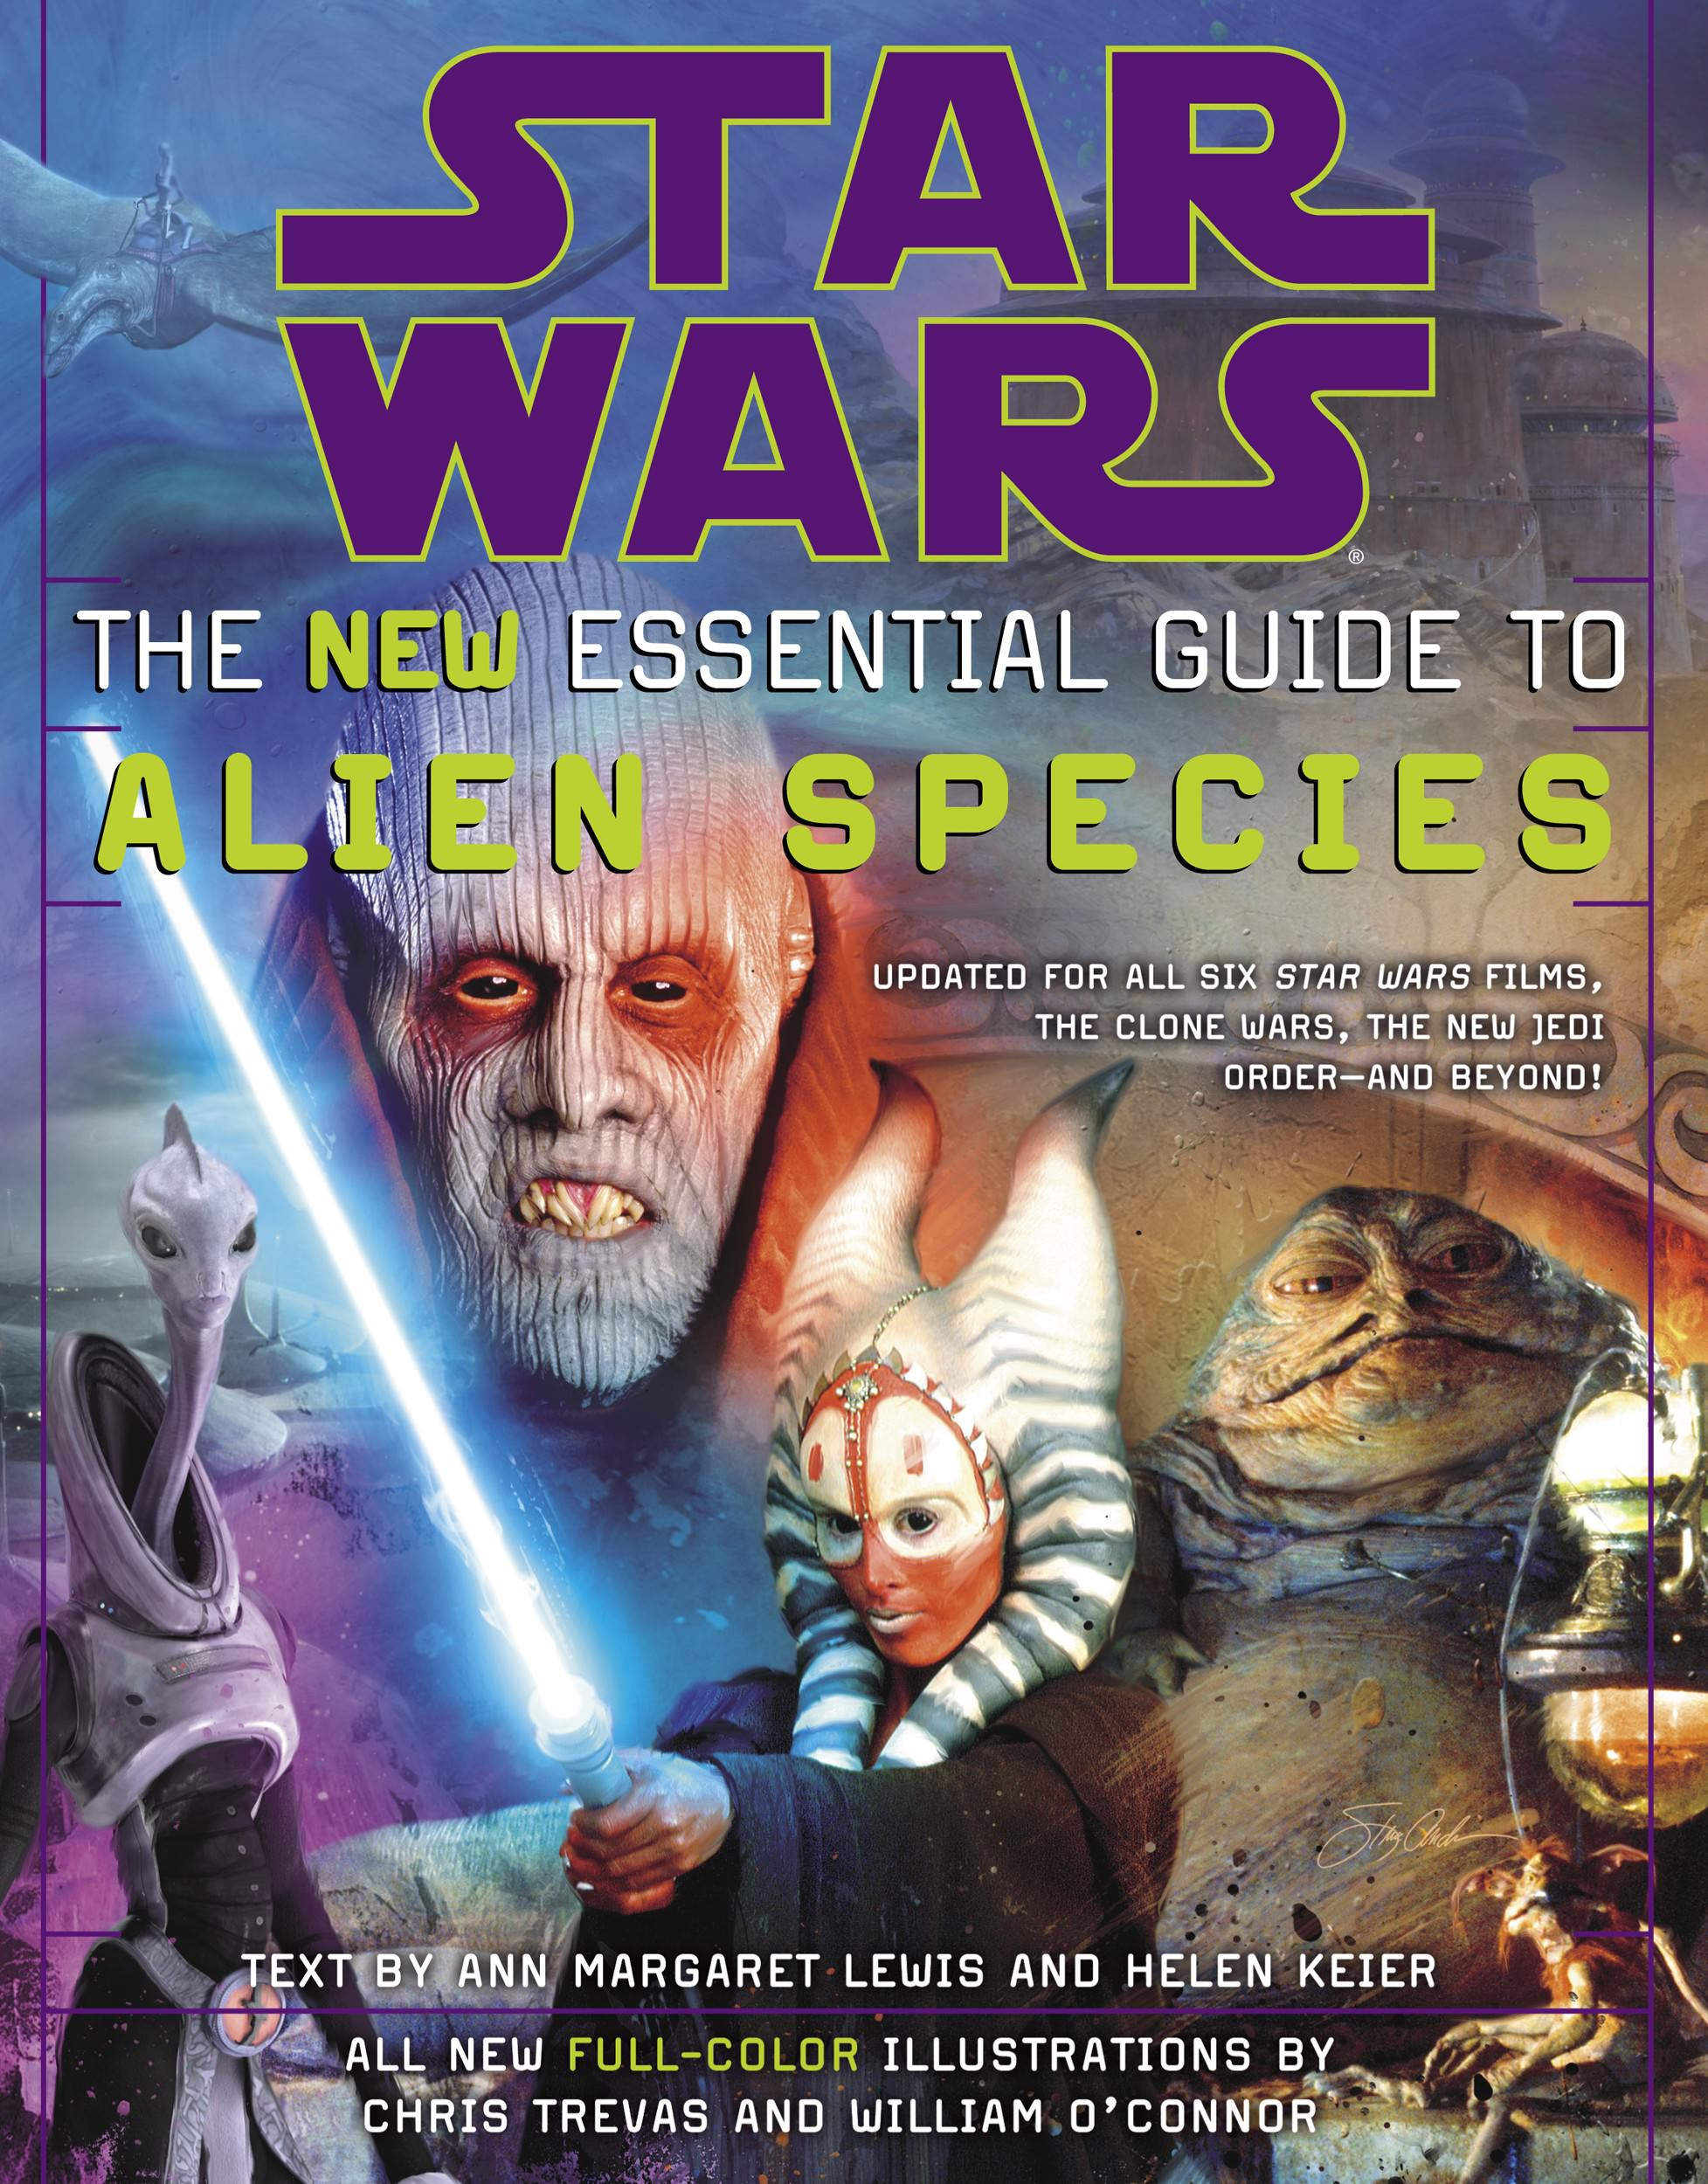 Star Wars: The New Essential Guide to Aliens